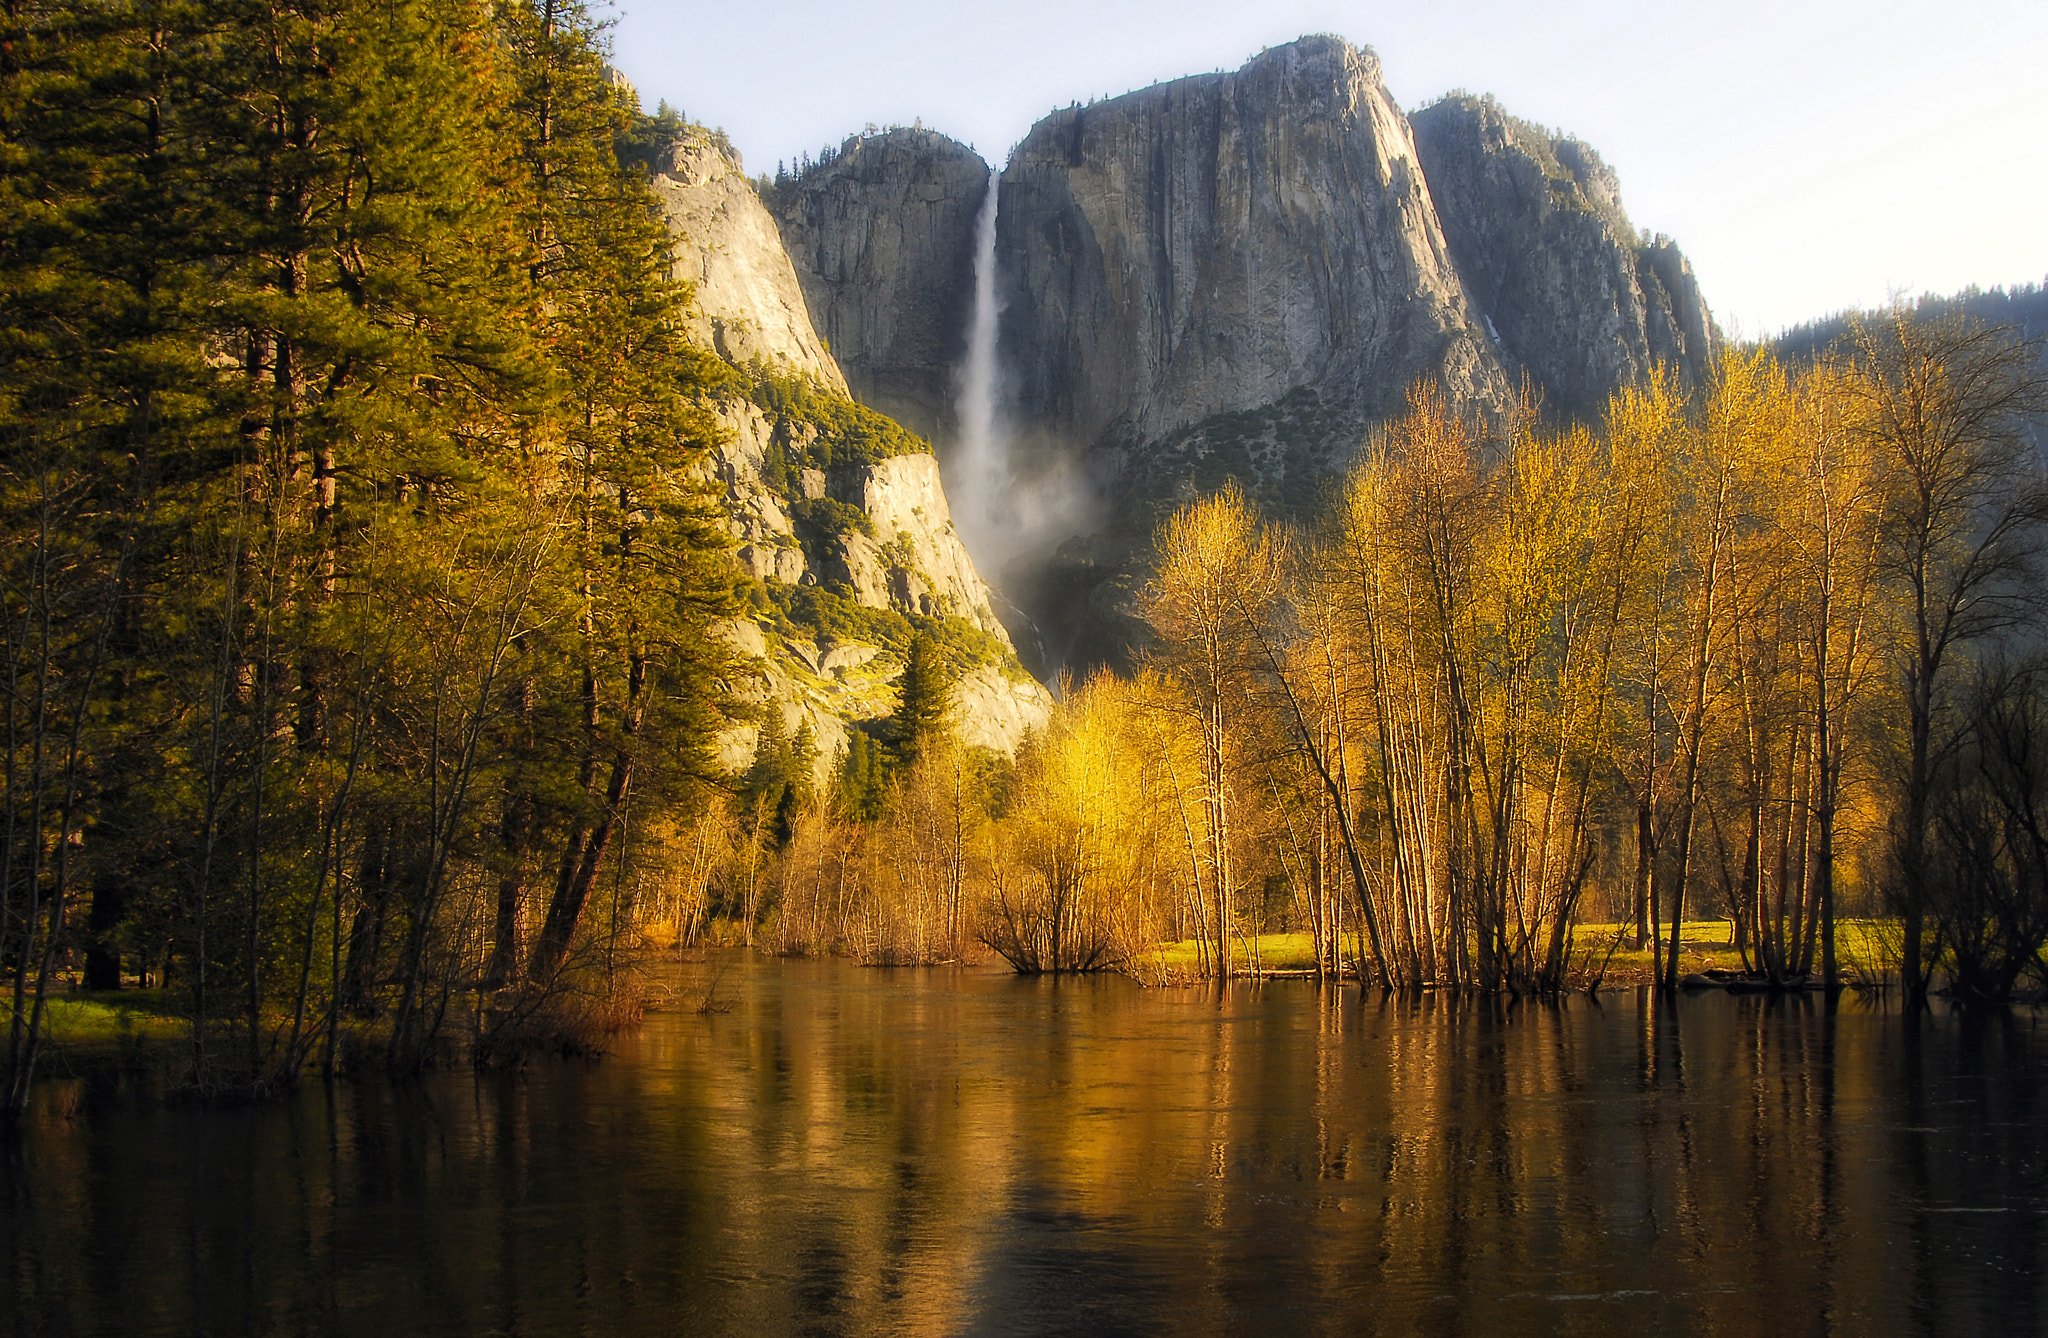 Photograph Gold in the Valley by Greg McLemore on 500px